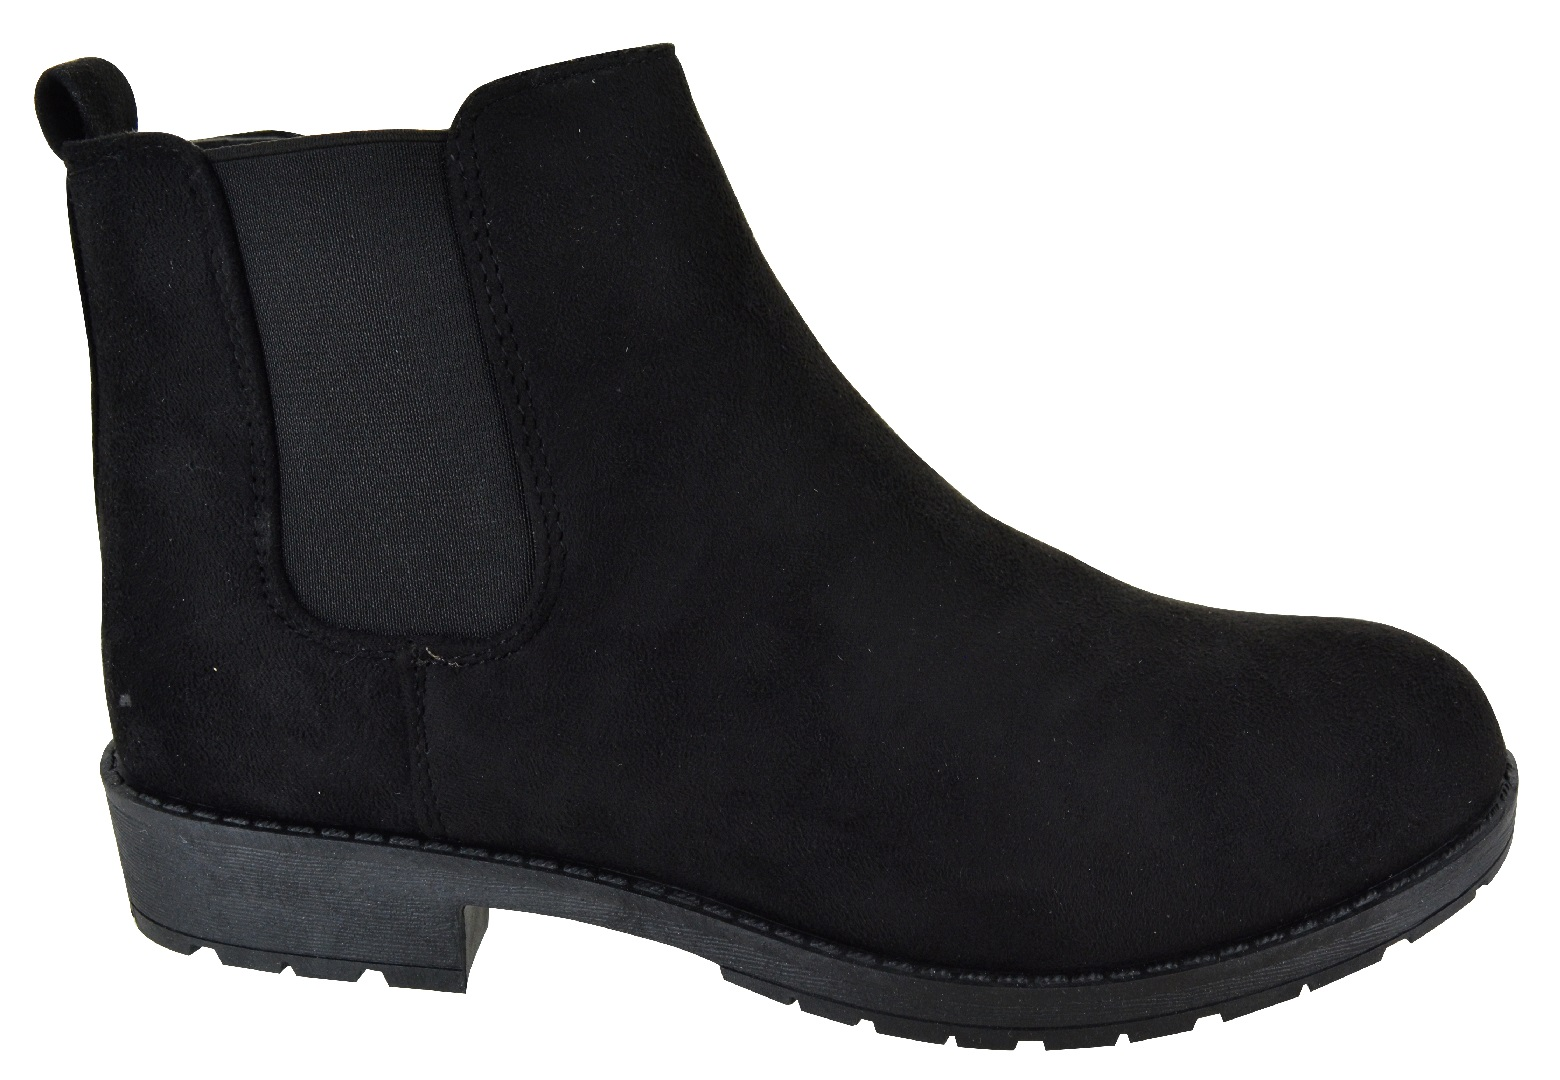 LADIES-WOMENS-CHELSEA-DEALER-SLIP-ON-FLAT-ANKLE-CAUSAL-LOW-HEEL-SHOES-BOOTS-SIZE thumbnail 3